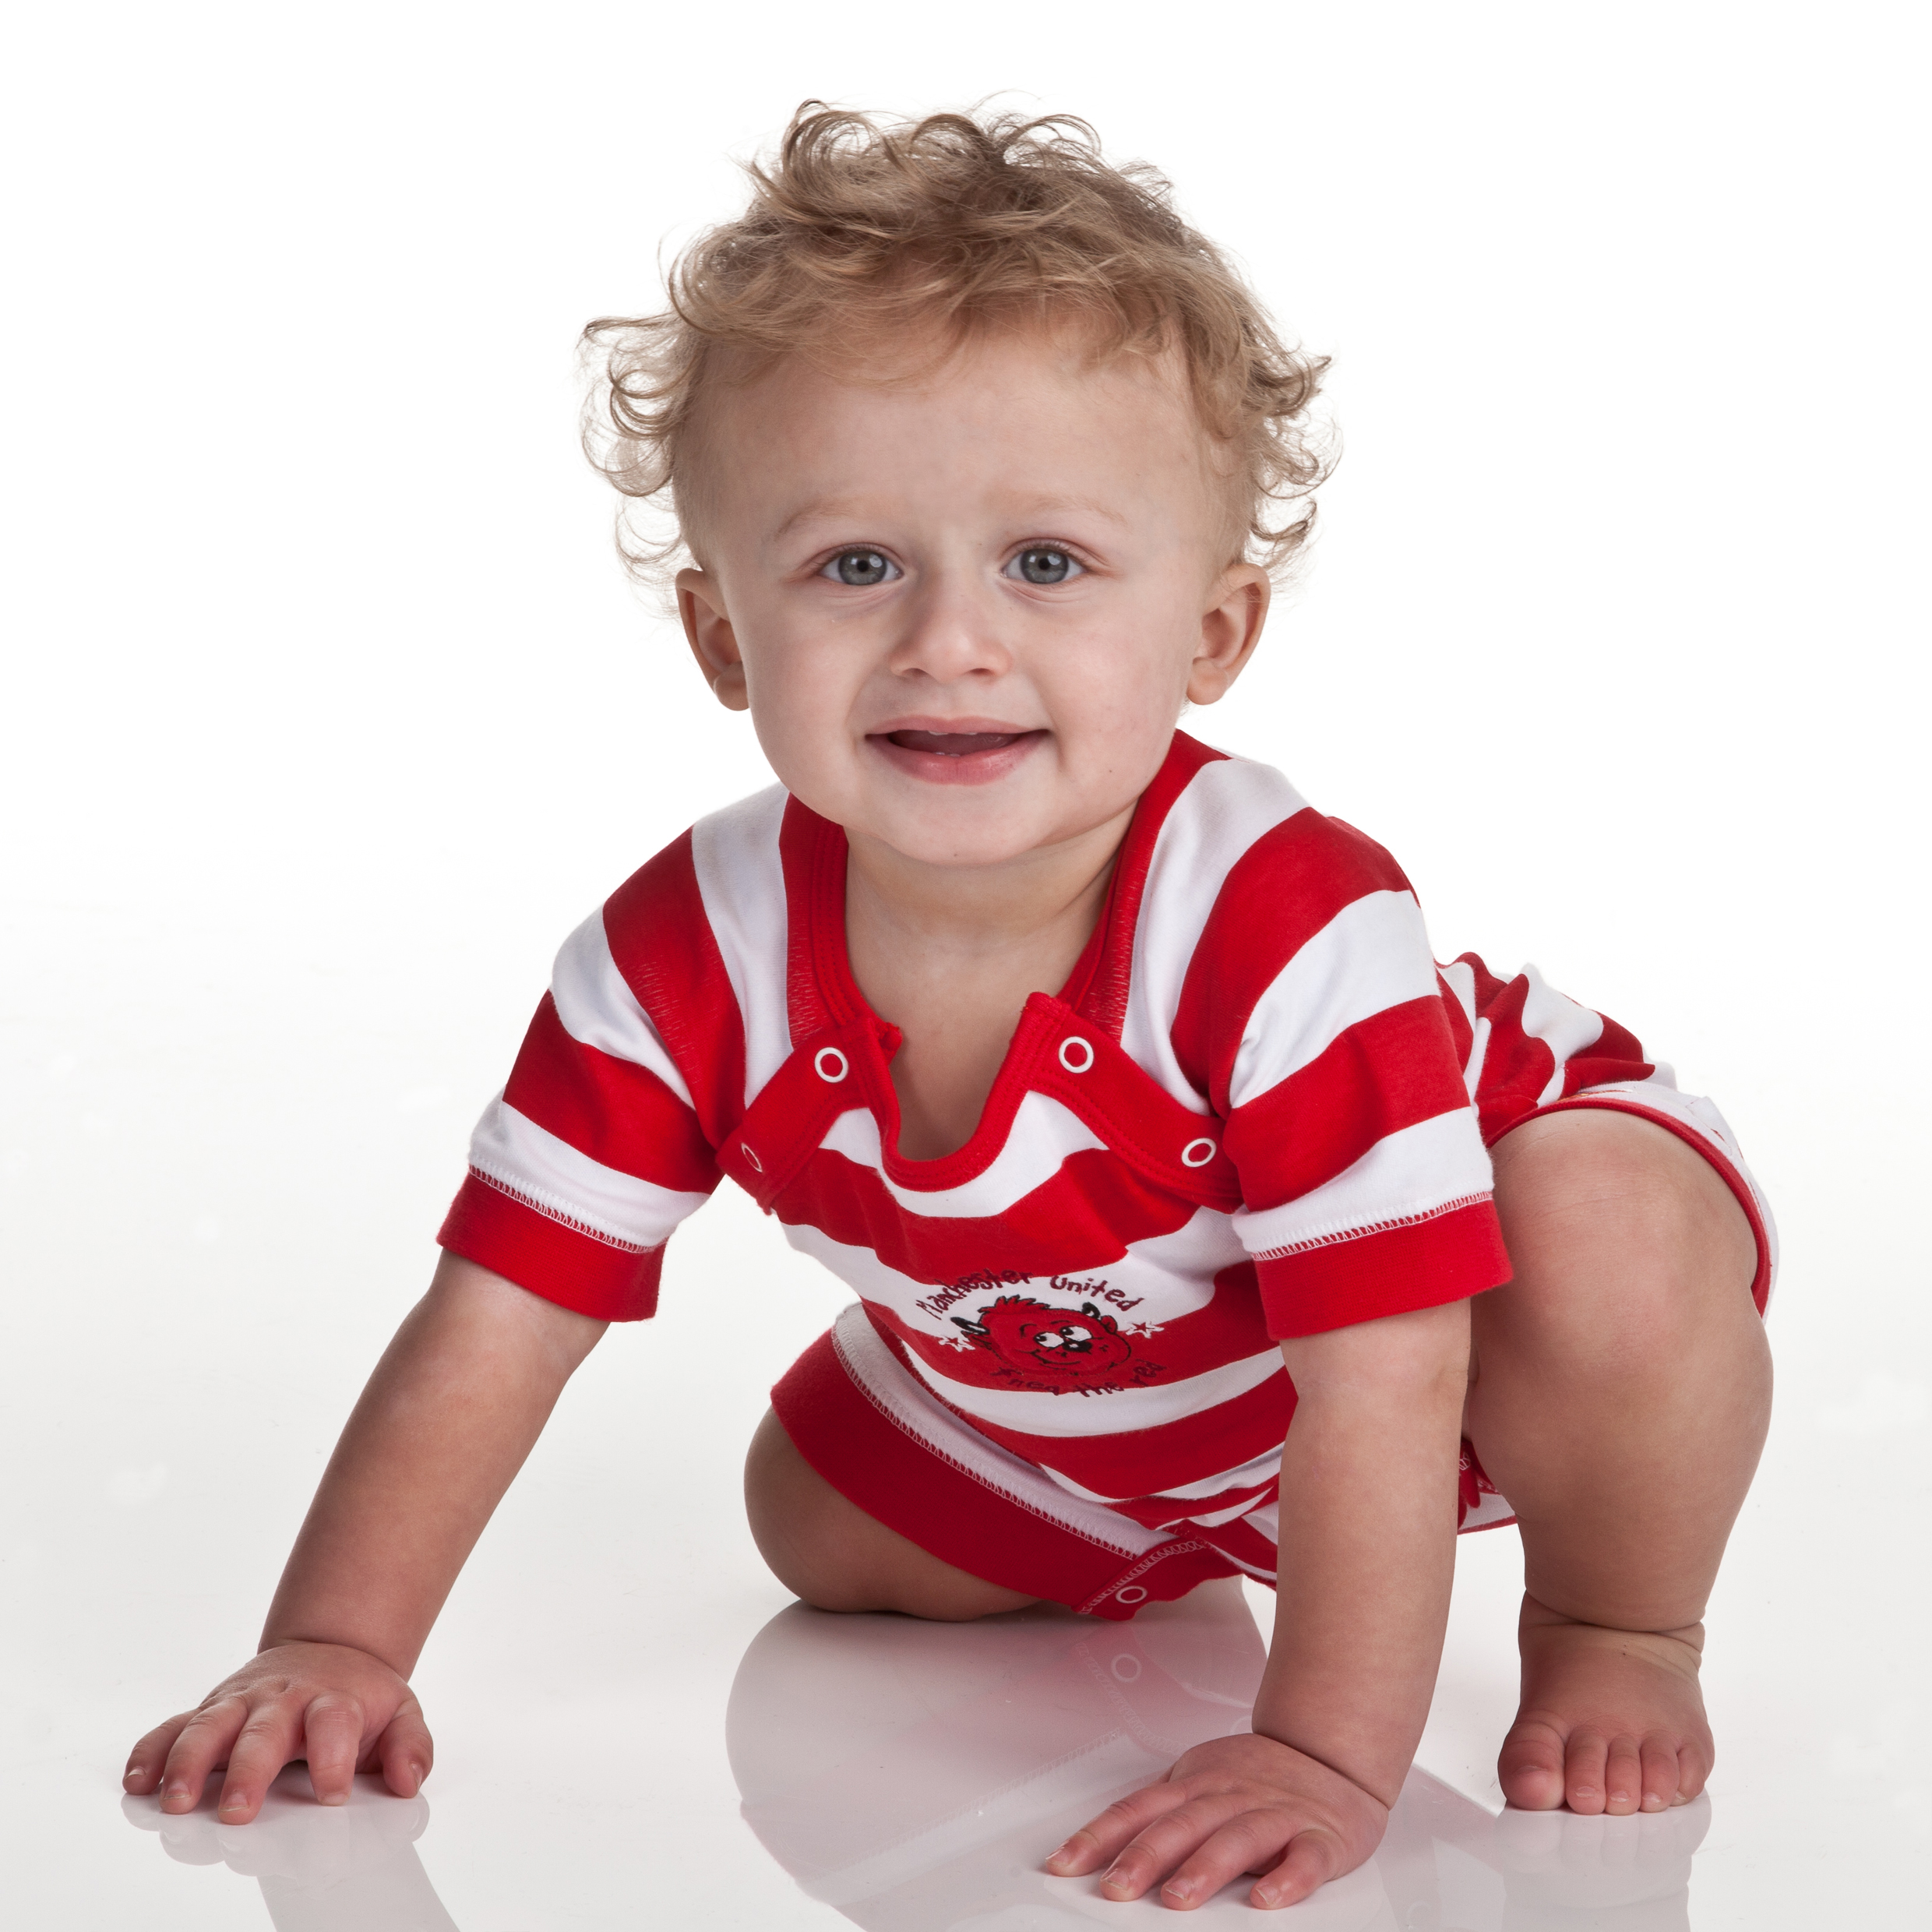 Manchester United Striped Fred The Red Romper - Red/White - Baby Boys